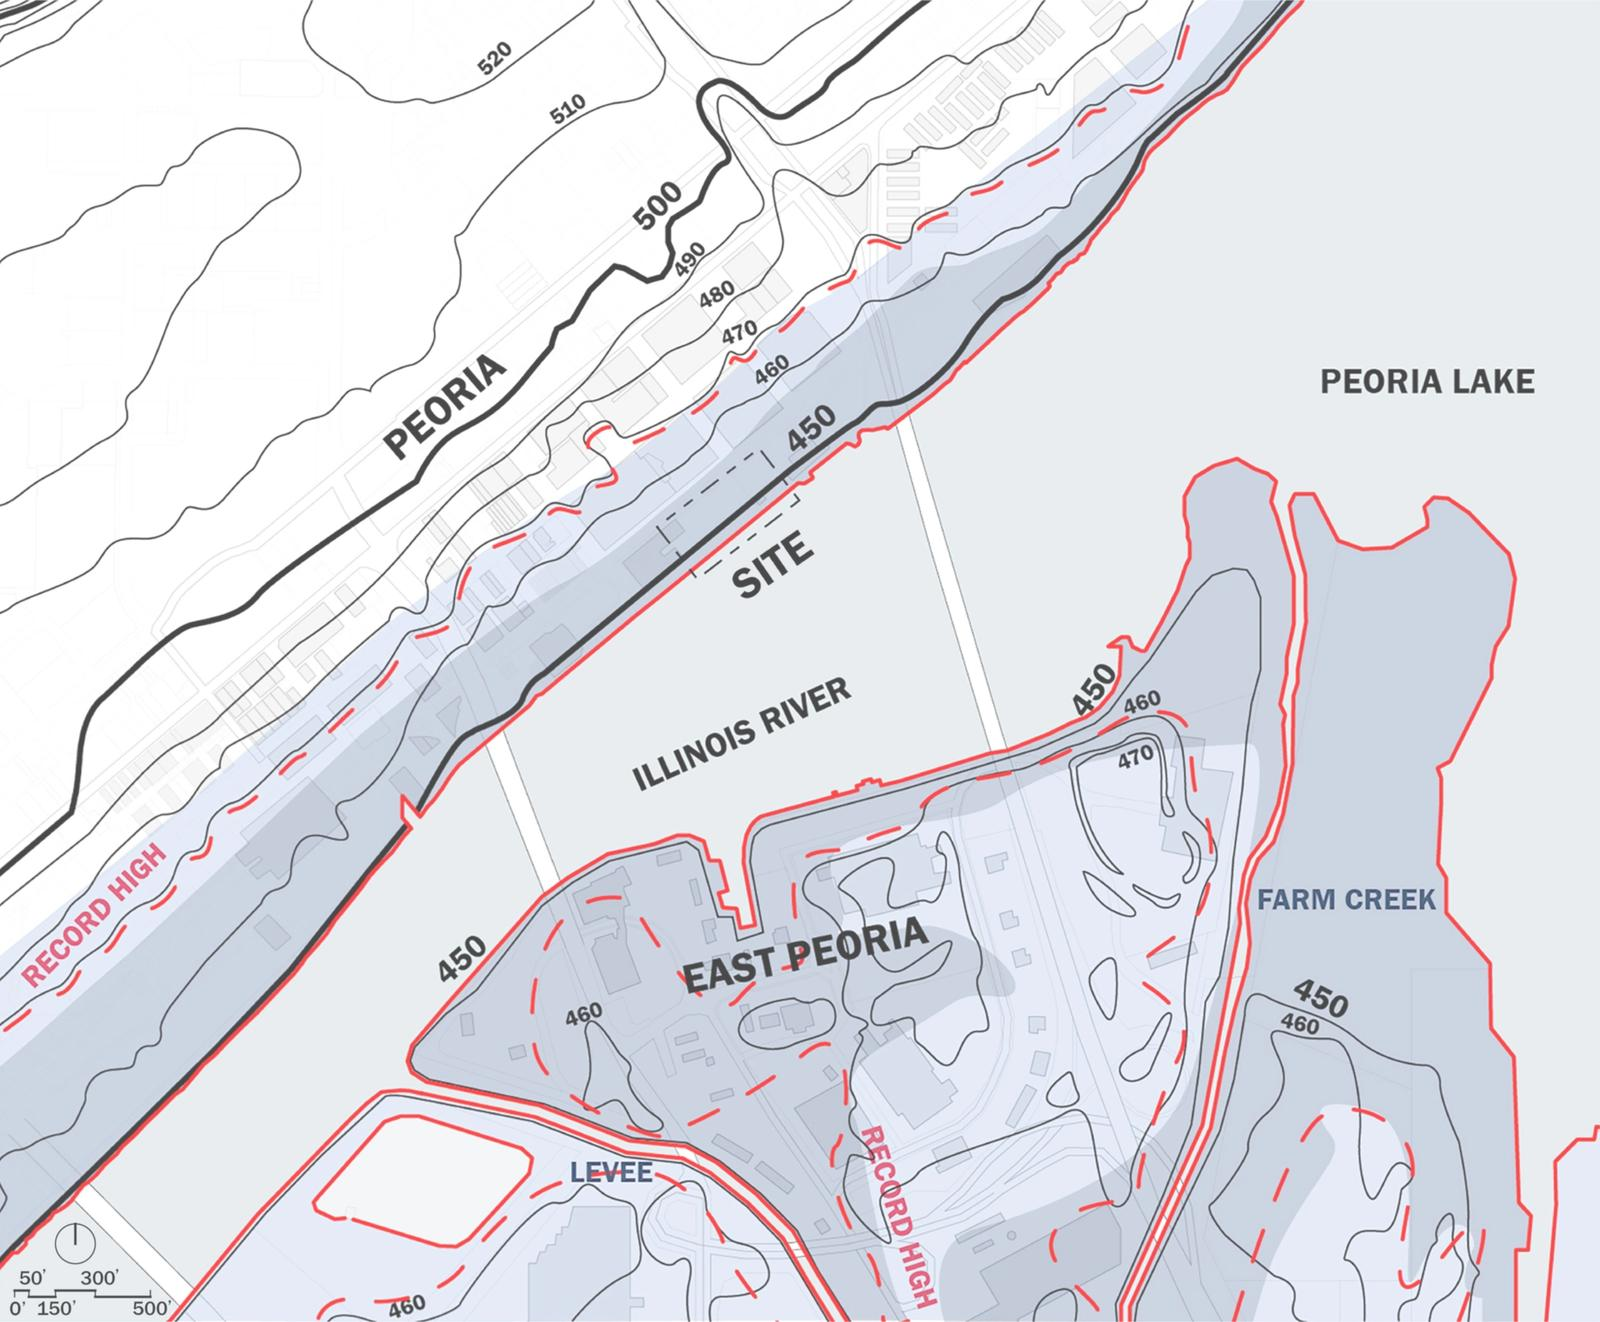 Site Map - Site Context, Topography, Hydrology of Illinois River in Peoria